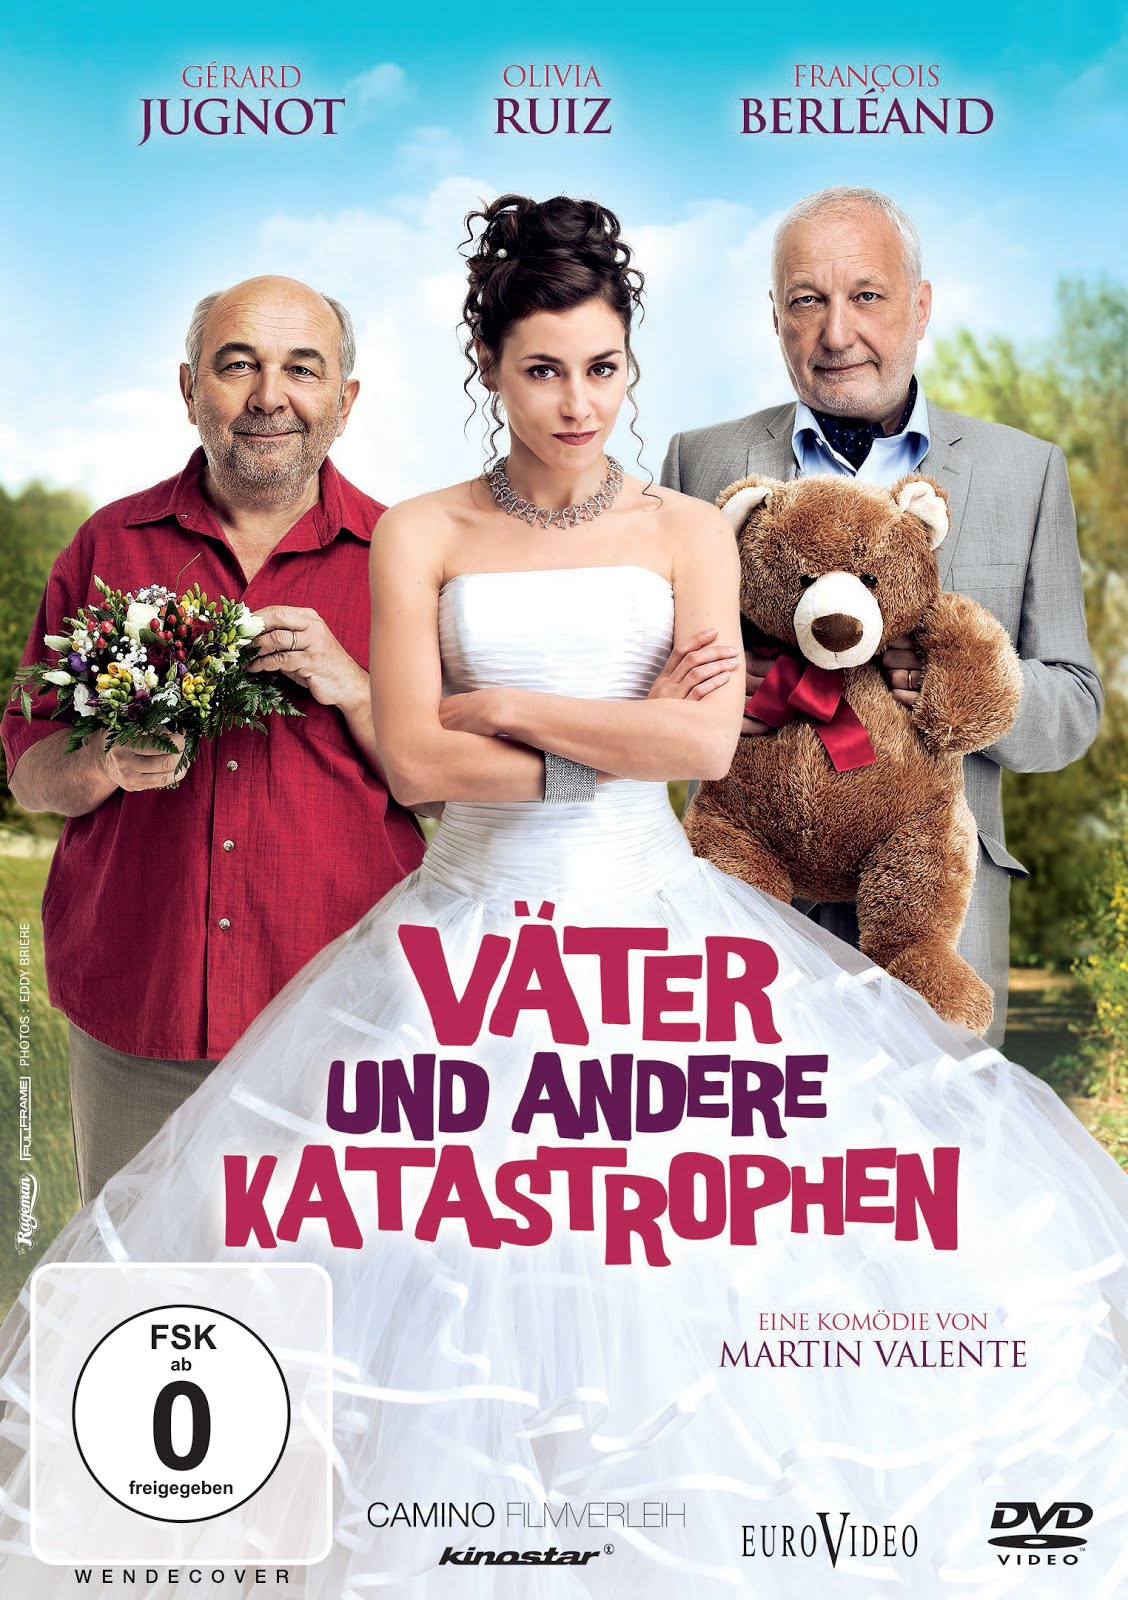 Jetzt auf DVD!